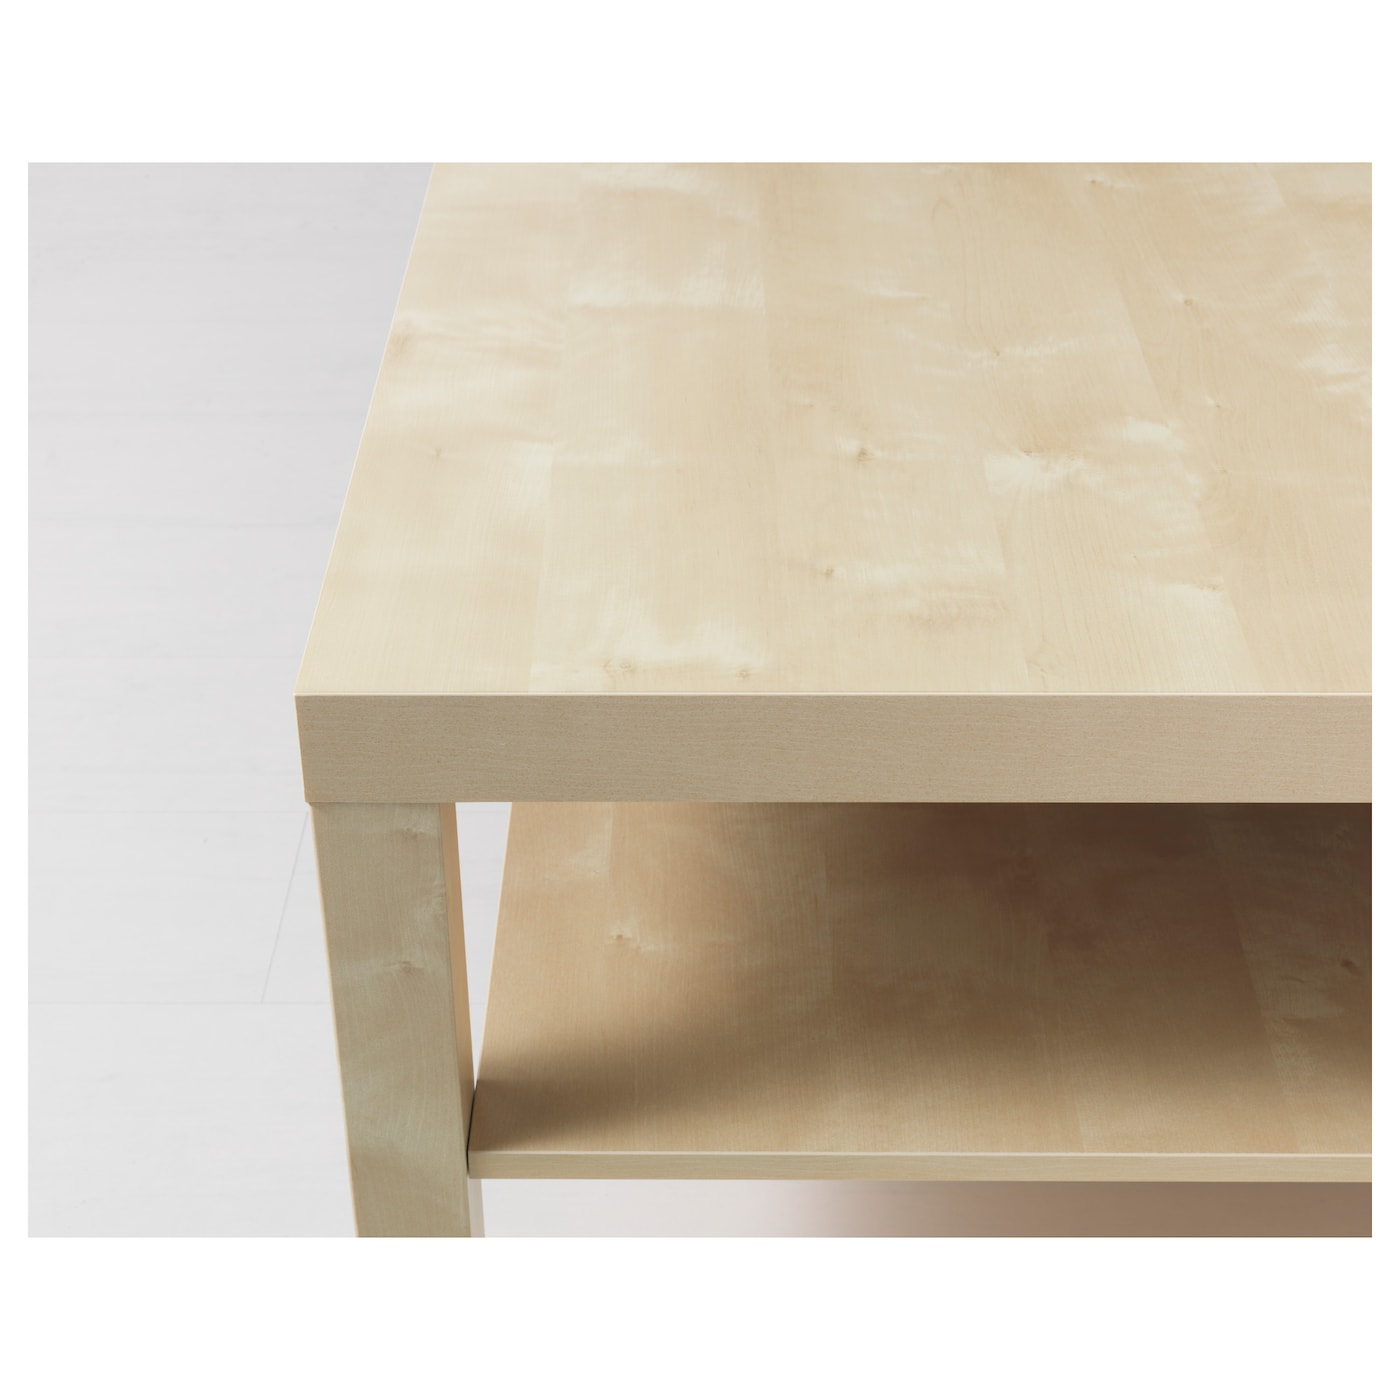 Ikea lack coffee table square images for Table 70 cm hauteur